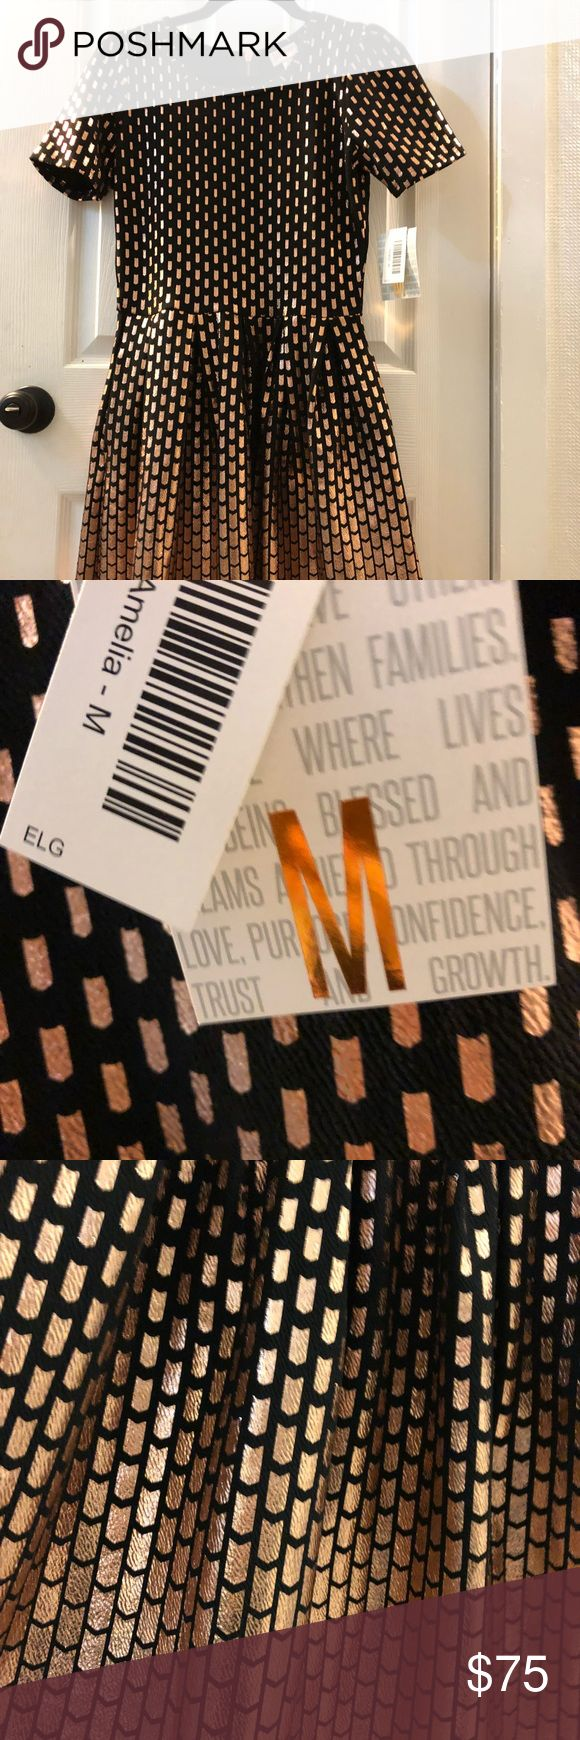 Lularoe LLR Amelia. Size Medium. NWT. Lularoe LLR Amelia. Size Medium. NWT. This is an amazing dress with pleats and pockets! Colors are rose gold and black with beautiful fading effect design. Rose gold zipper in the back. The amazing thing is this dress can also be worn backwards to have the zipper in front. Sizing is forgiving and can be worn by multiple sizes. Ask any questions! Shop the rest of my closet! LuLaRoe Dresses